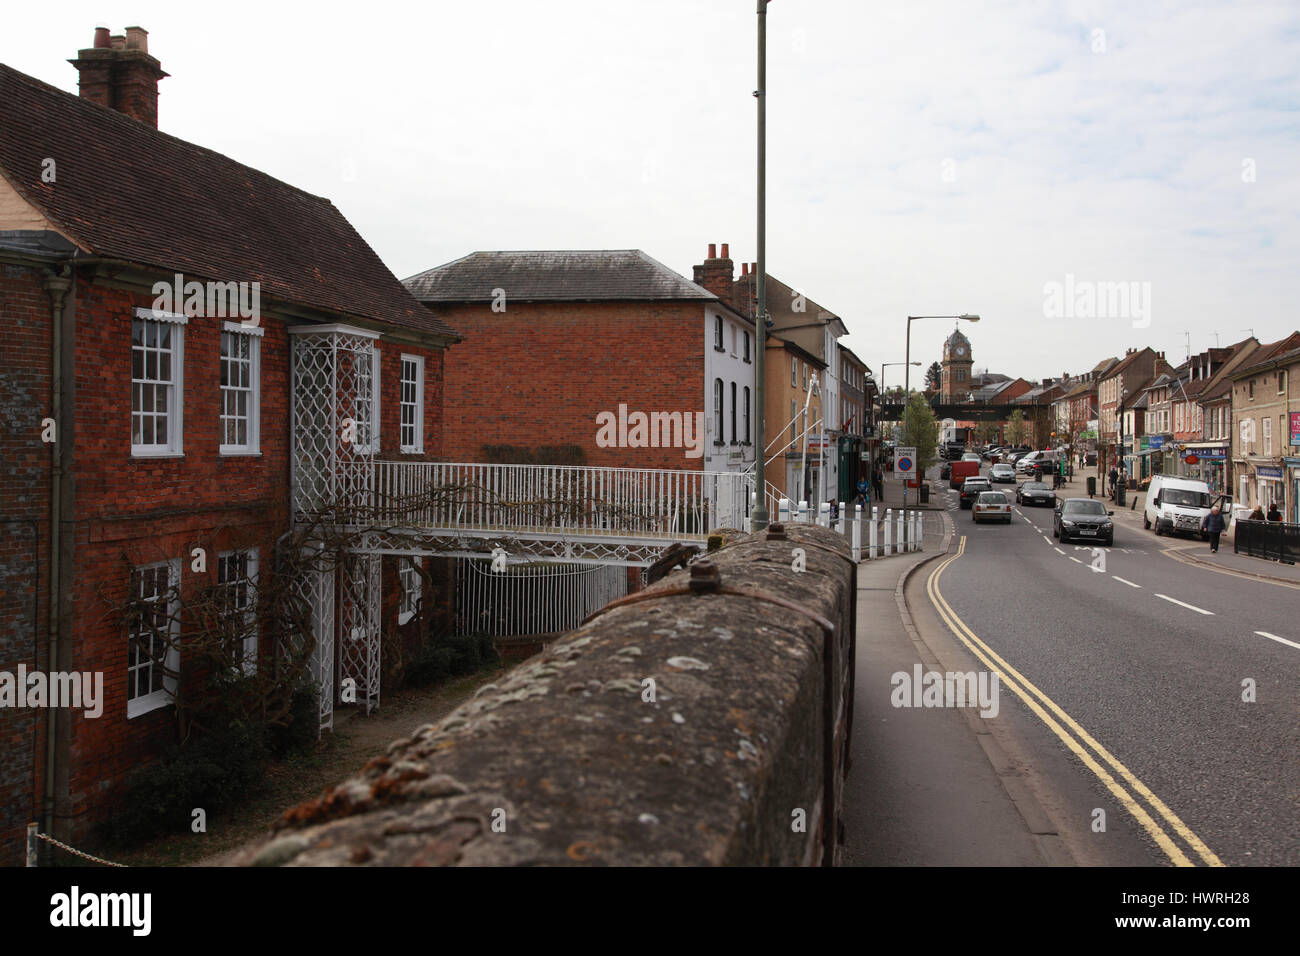 The High Street, Hungerford, Berkshire from the bridge over the Kennet and Avon Canal - Stock Image